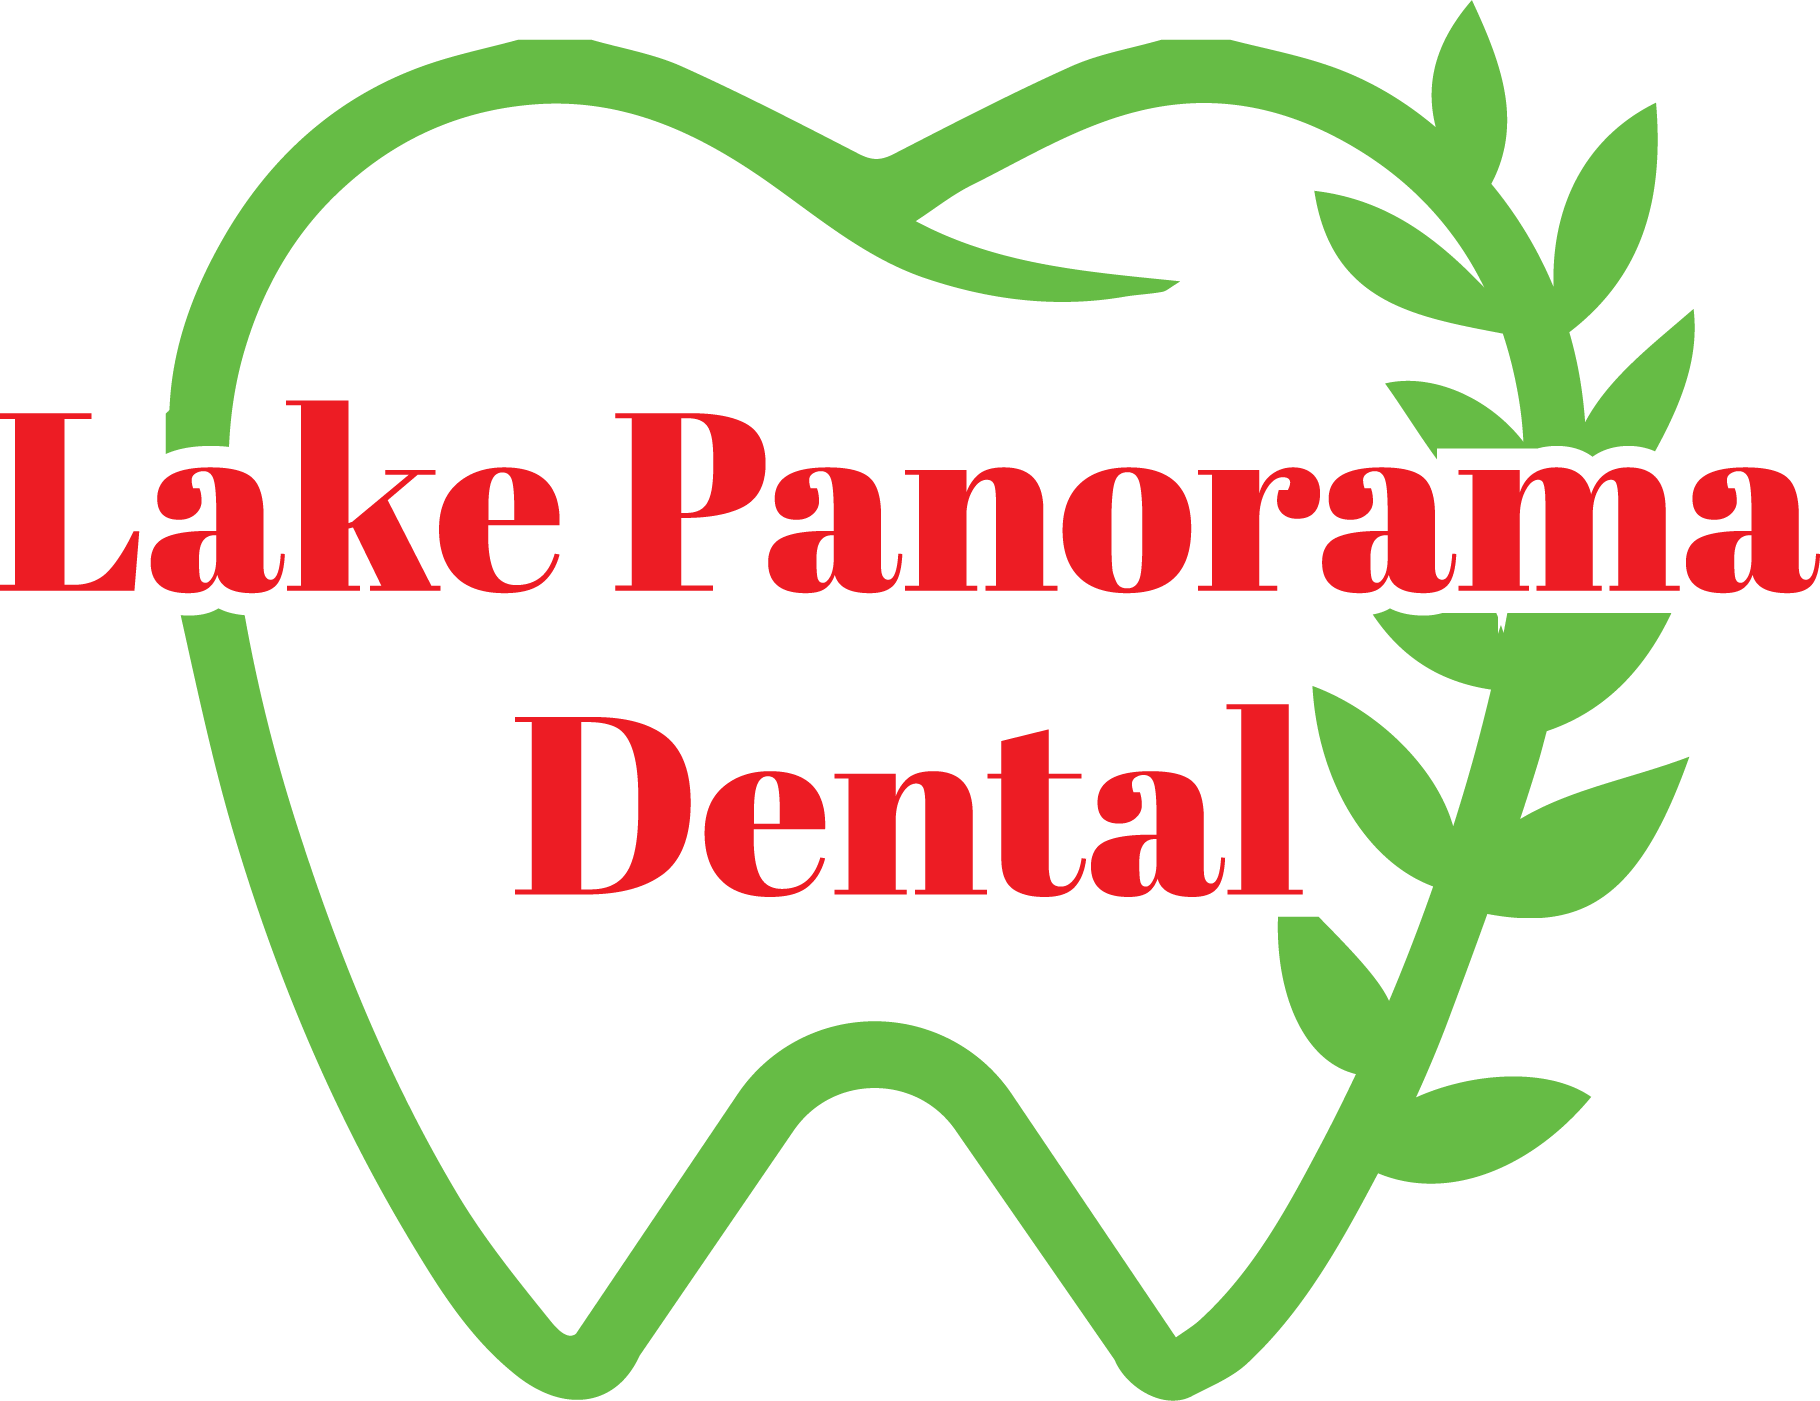 Lake Panorama Dental Logo